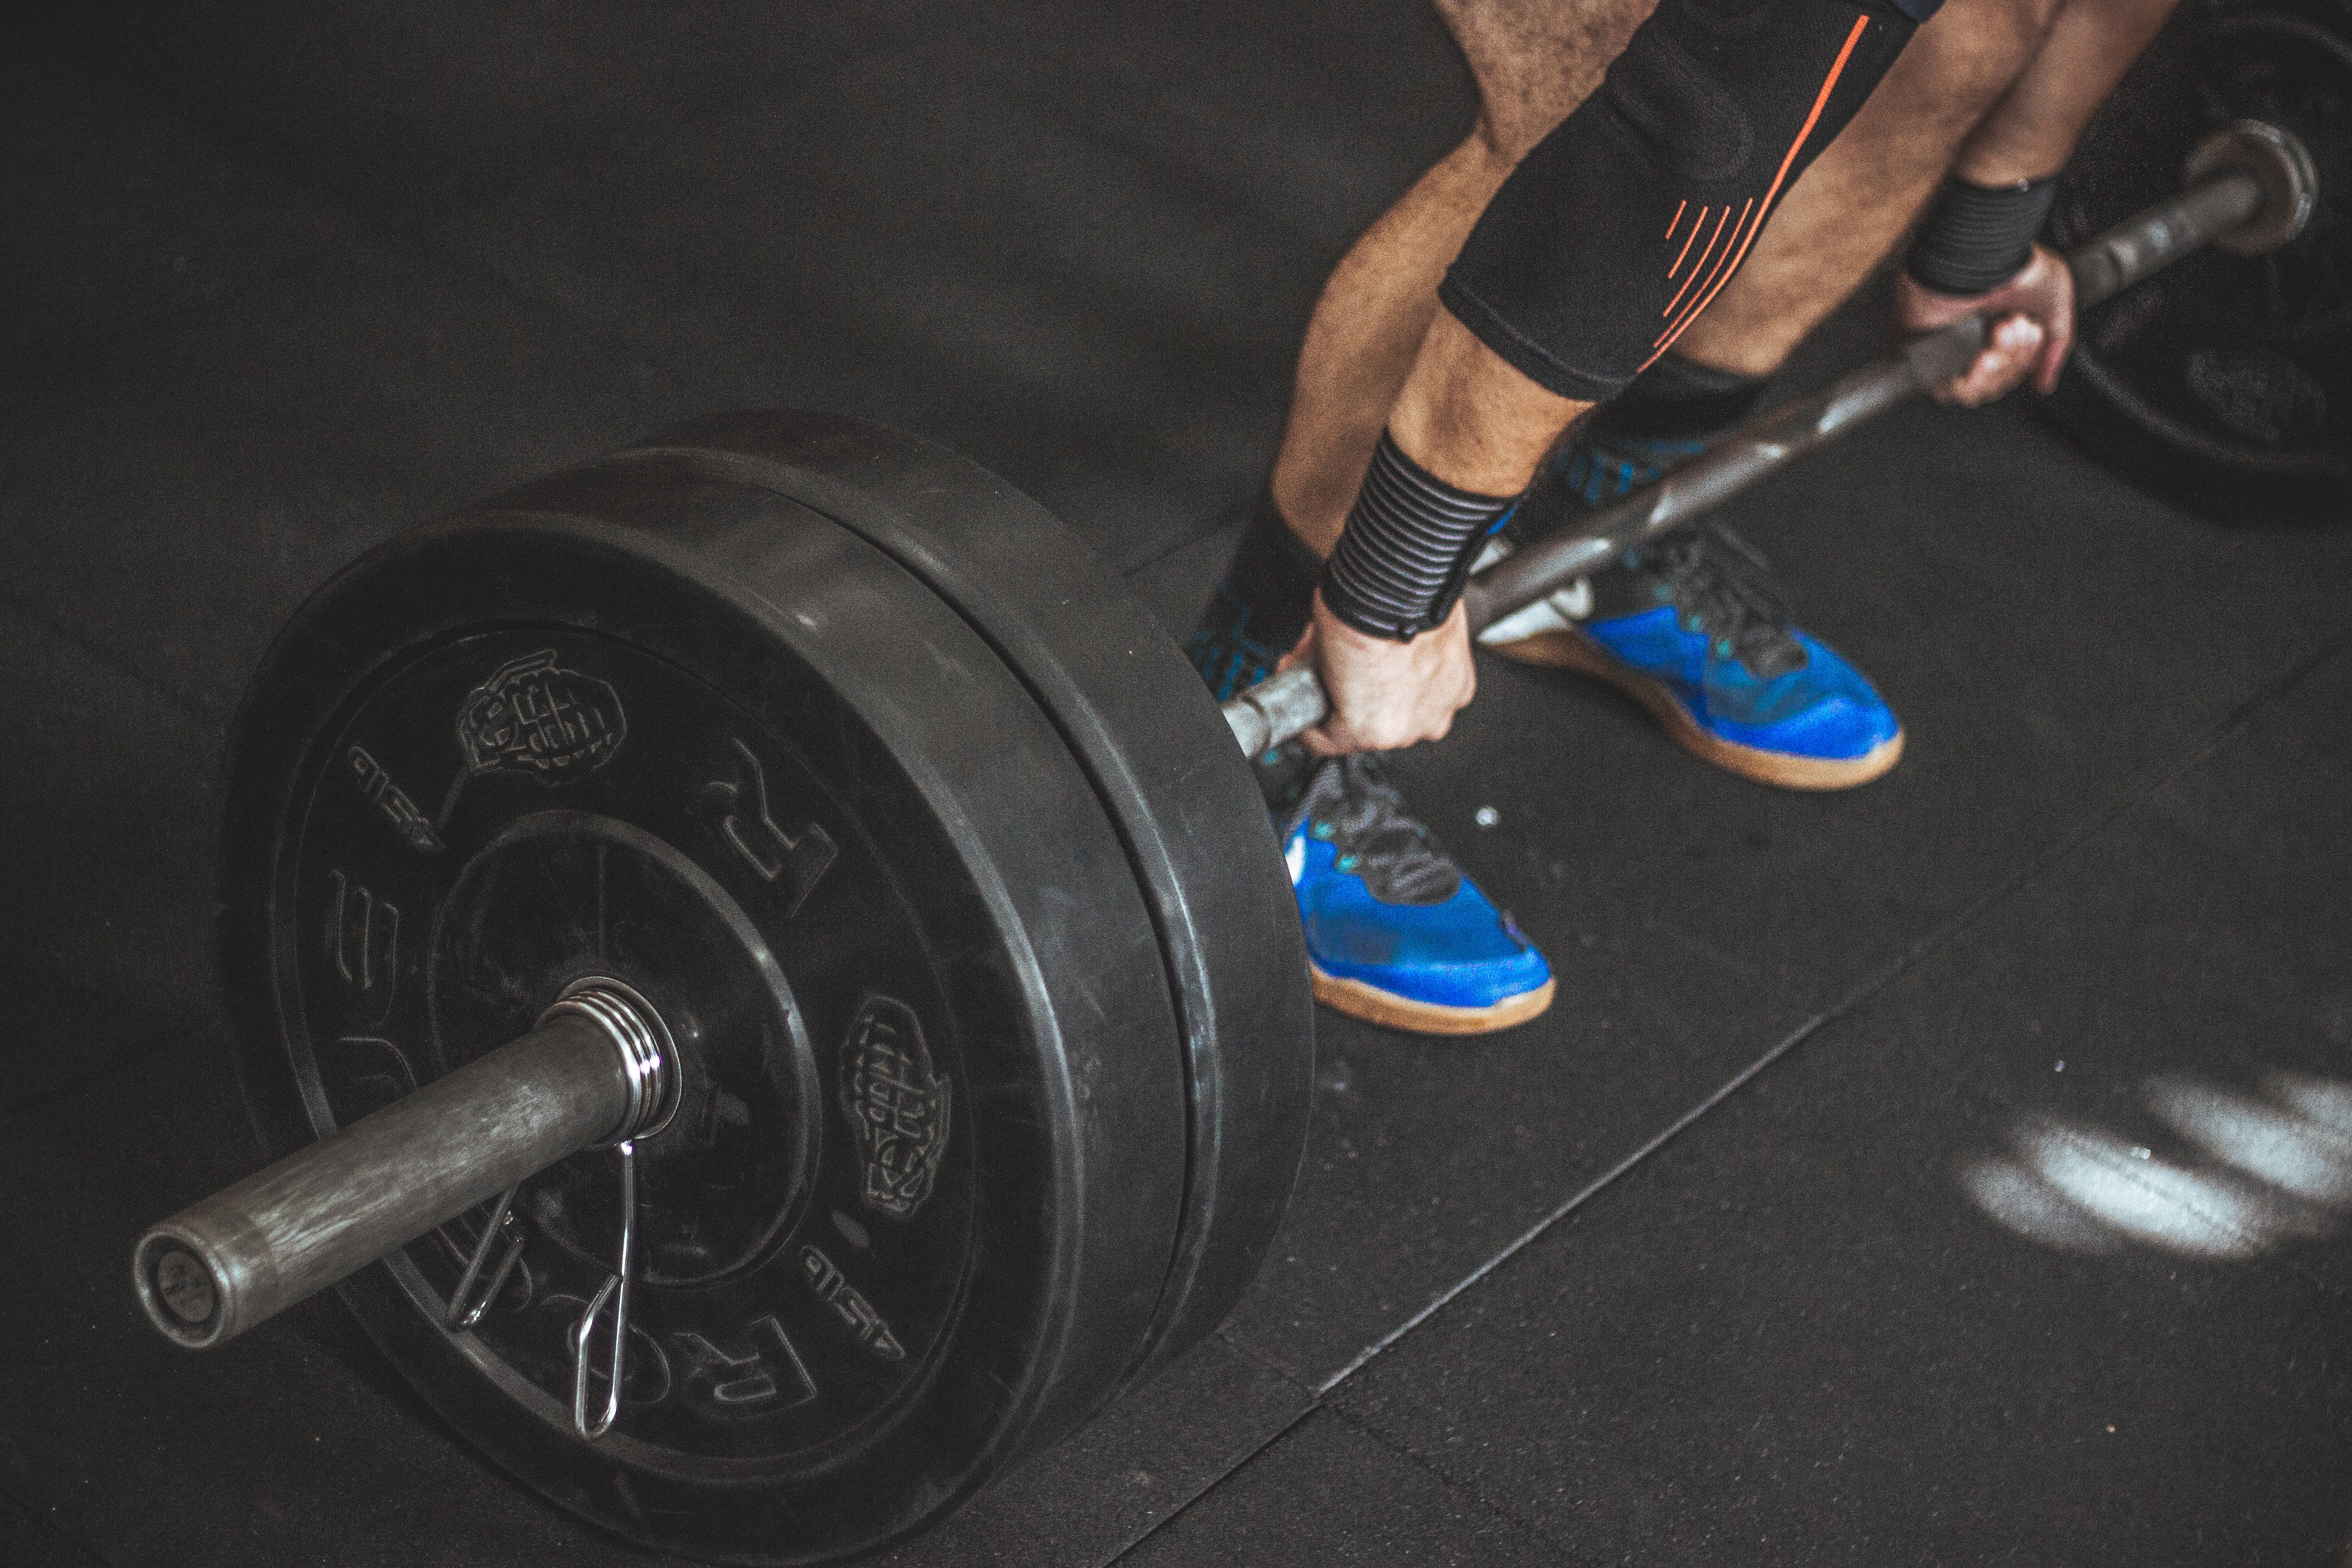 Close-up of a Person's Lower Body Holding Barbell, Athlete, Metal, Weights, Weightlifting, HQ Photo